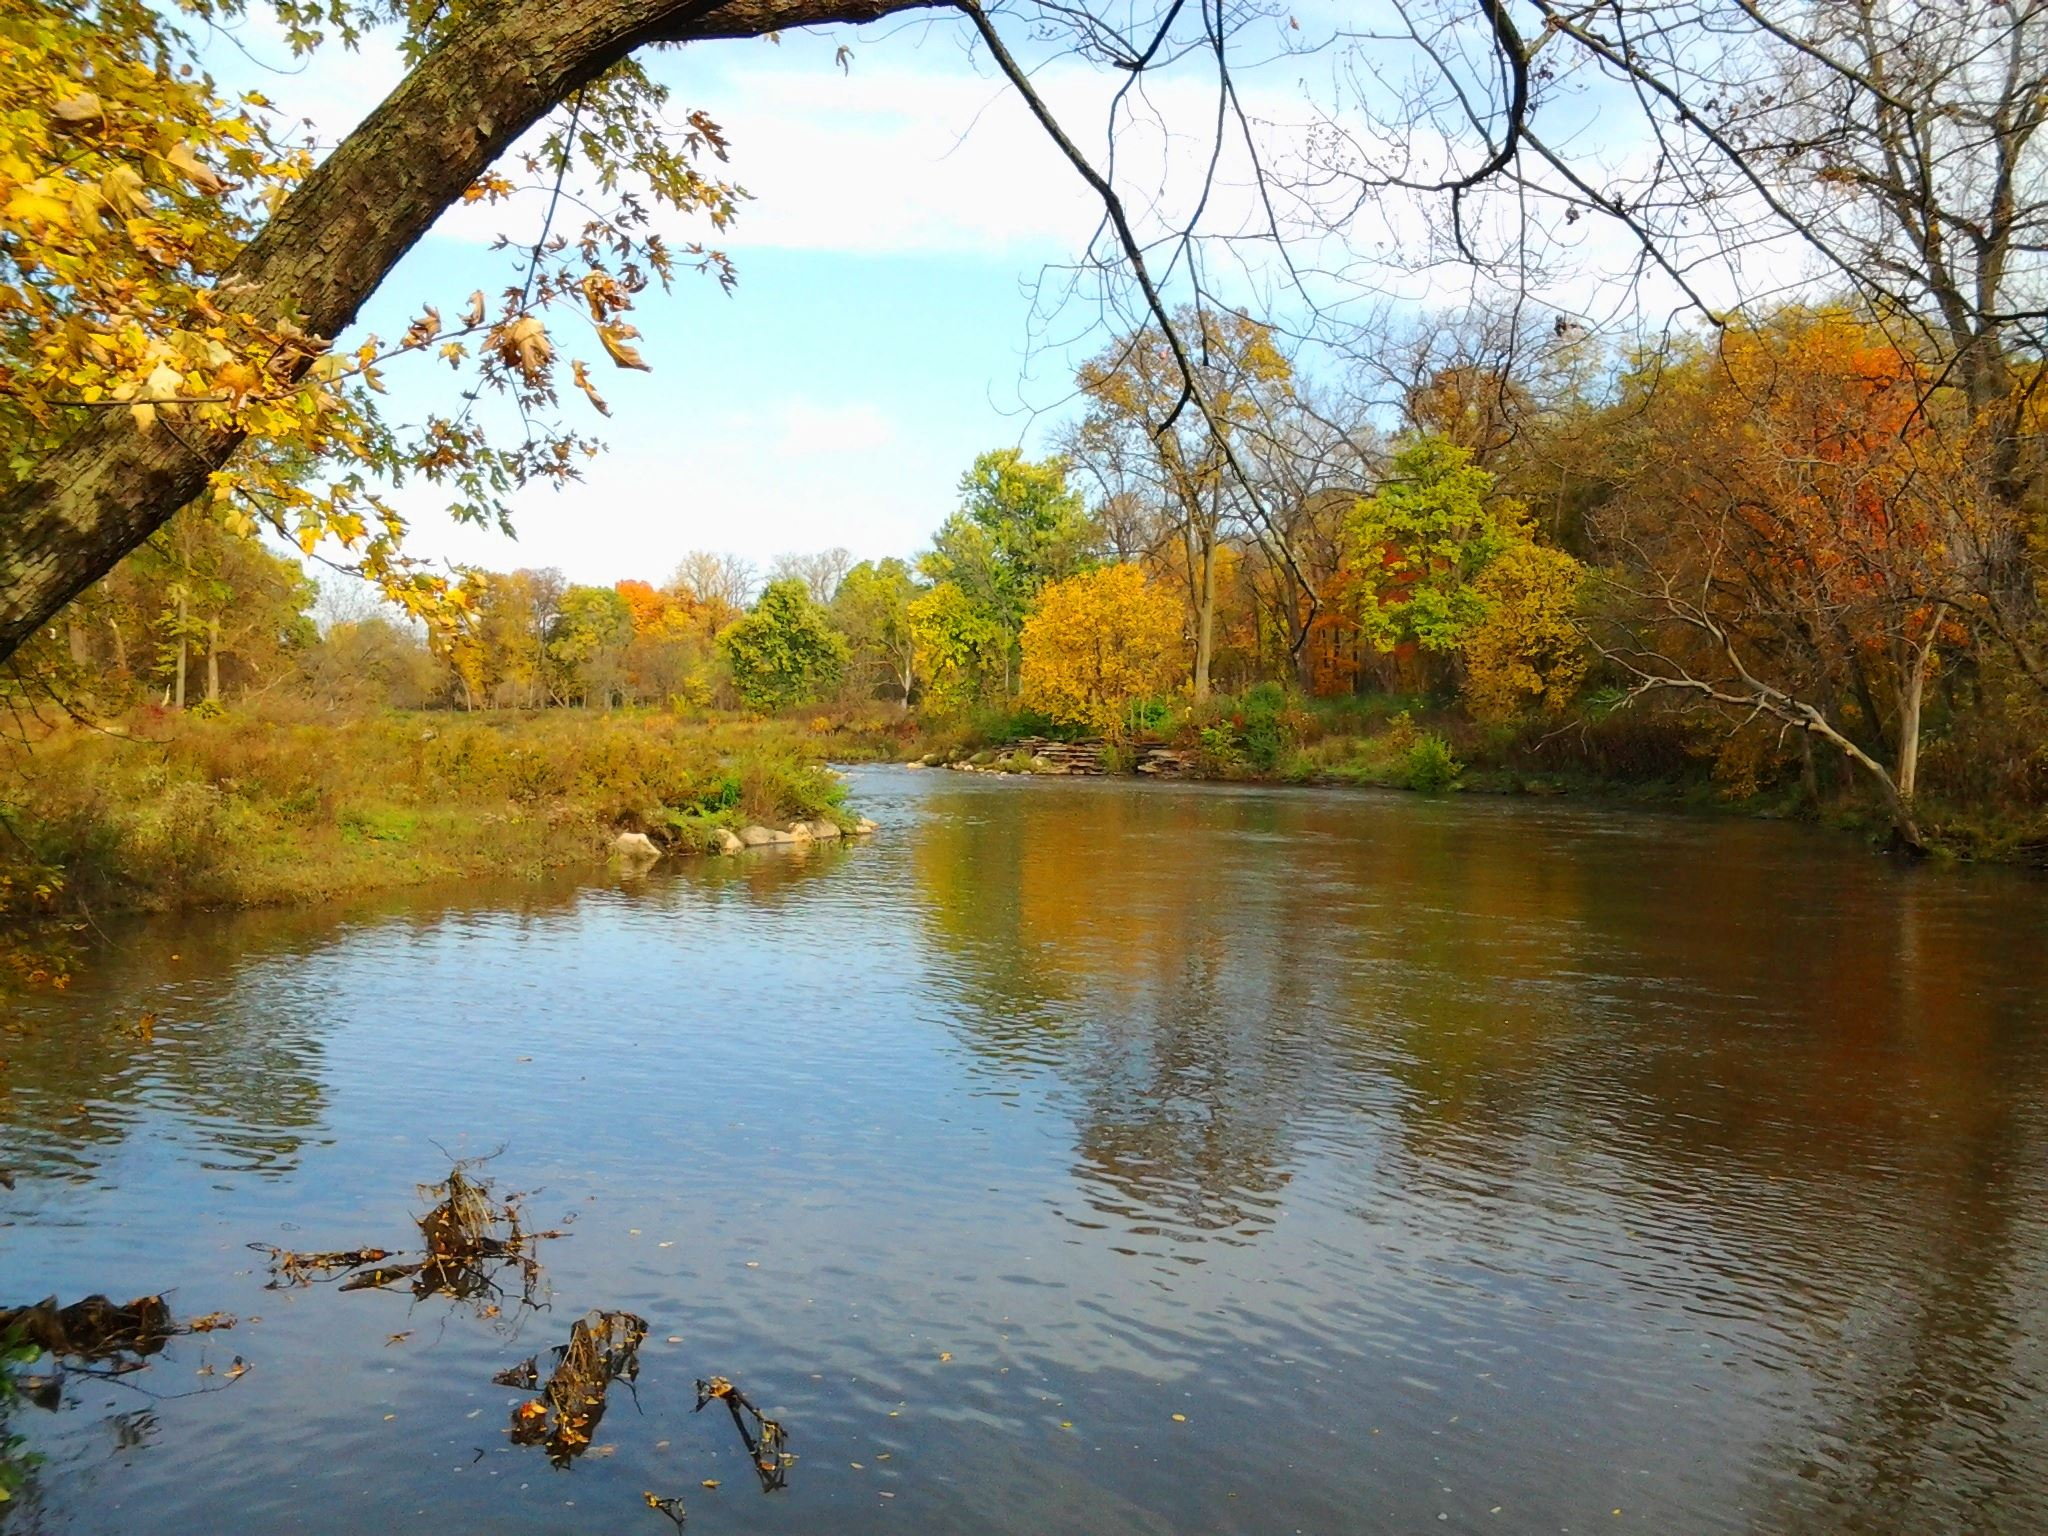 Image of river in the fall